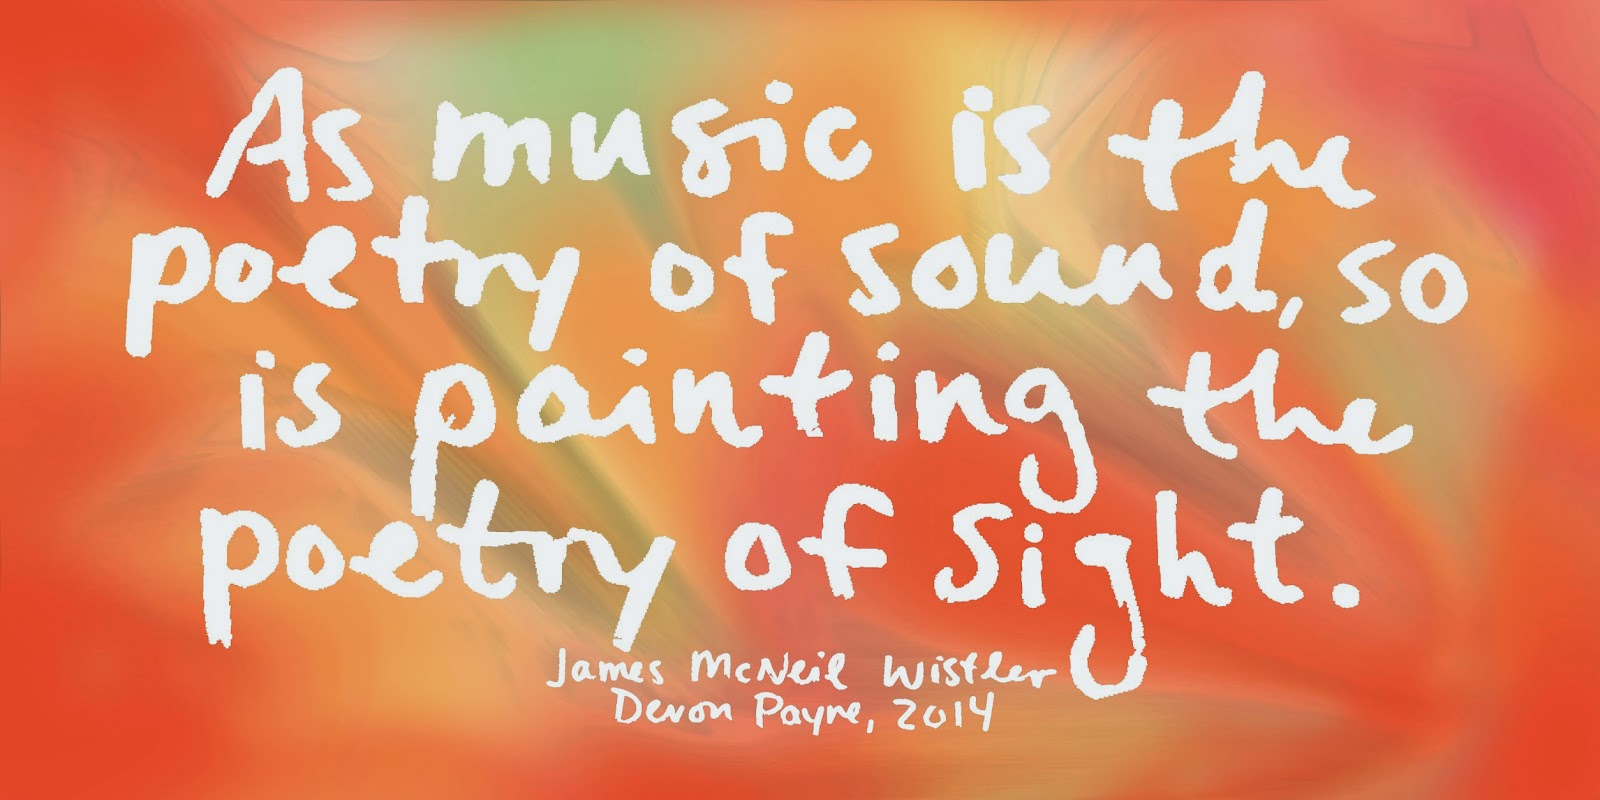 Quotes about Art & Creativity | Digital Art Education